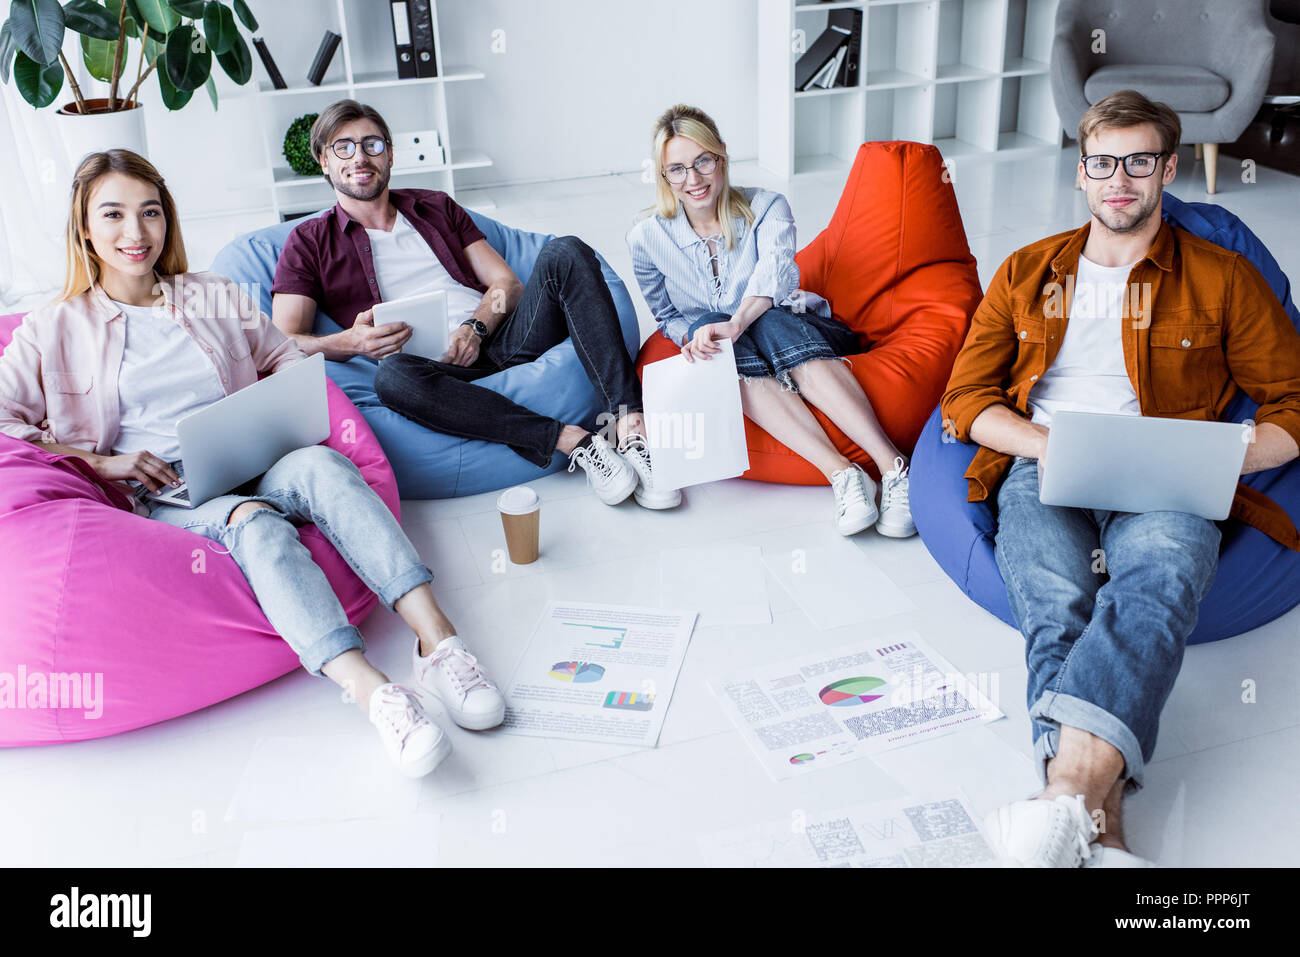 multicultural colleagues working on startup project in office and sitting on bean bag chairs with gadgets - Stock Image